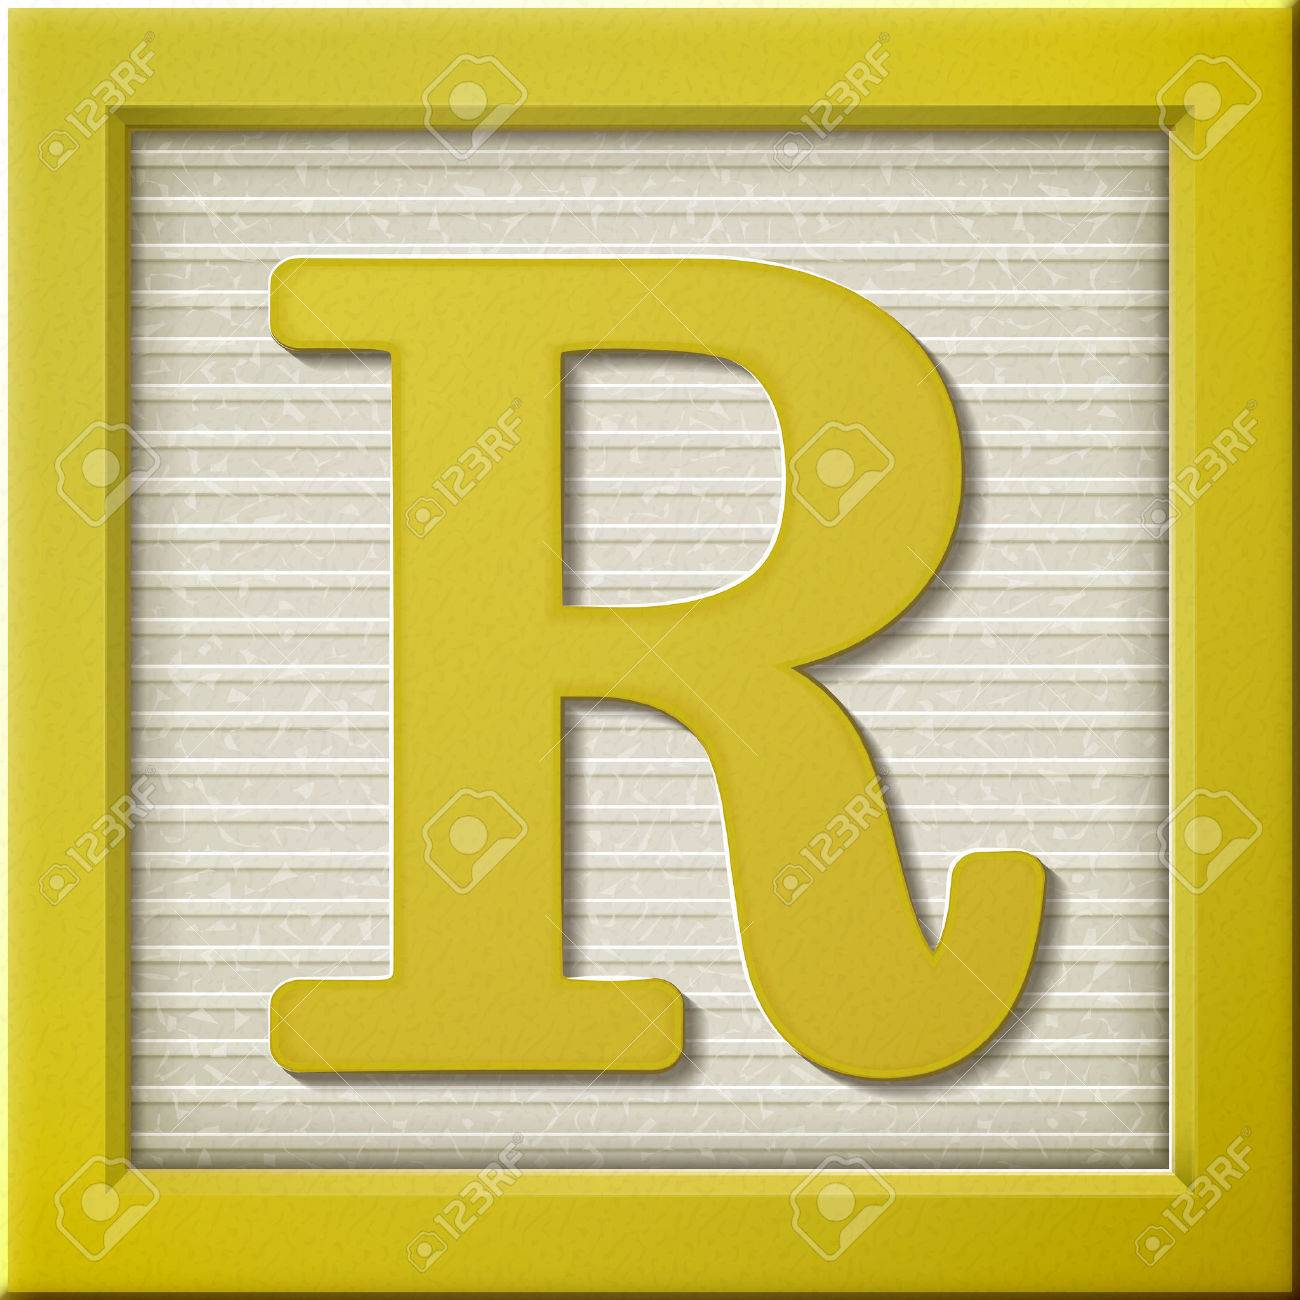 Close Up Look At 3d Yellow Letter Block R Royalty Free Cliparts Vectors And Stock Illustration Image 38556454